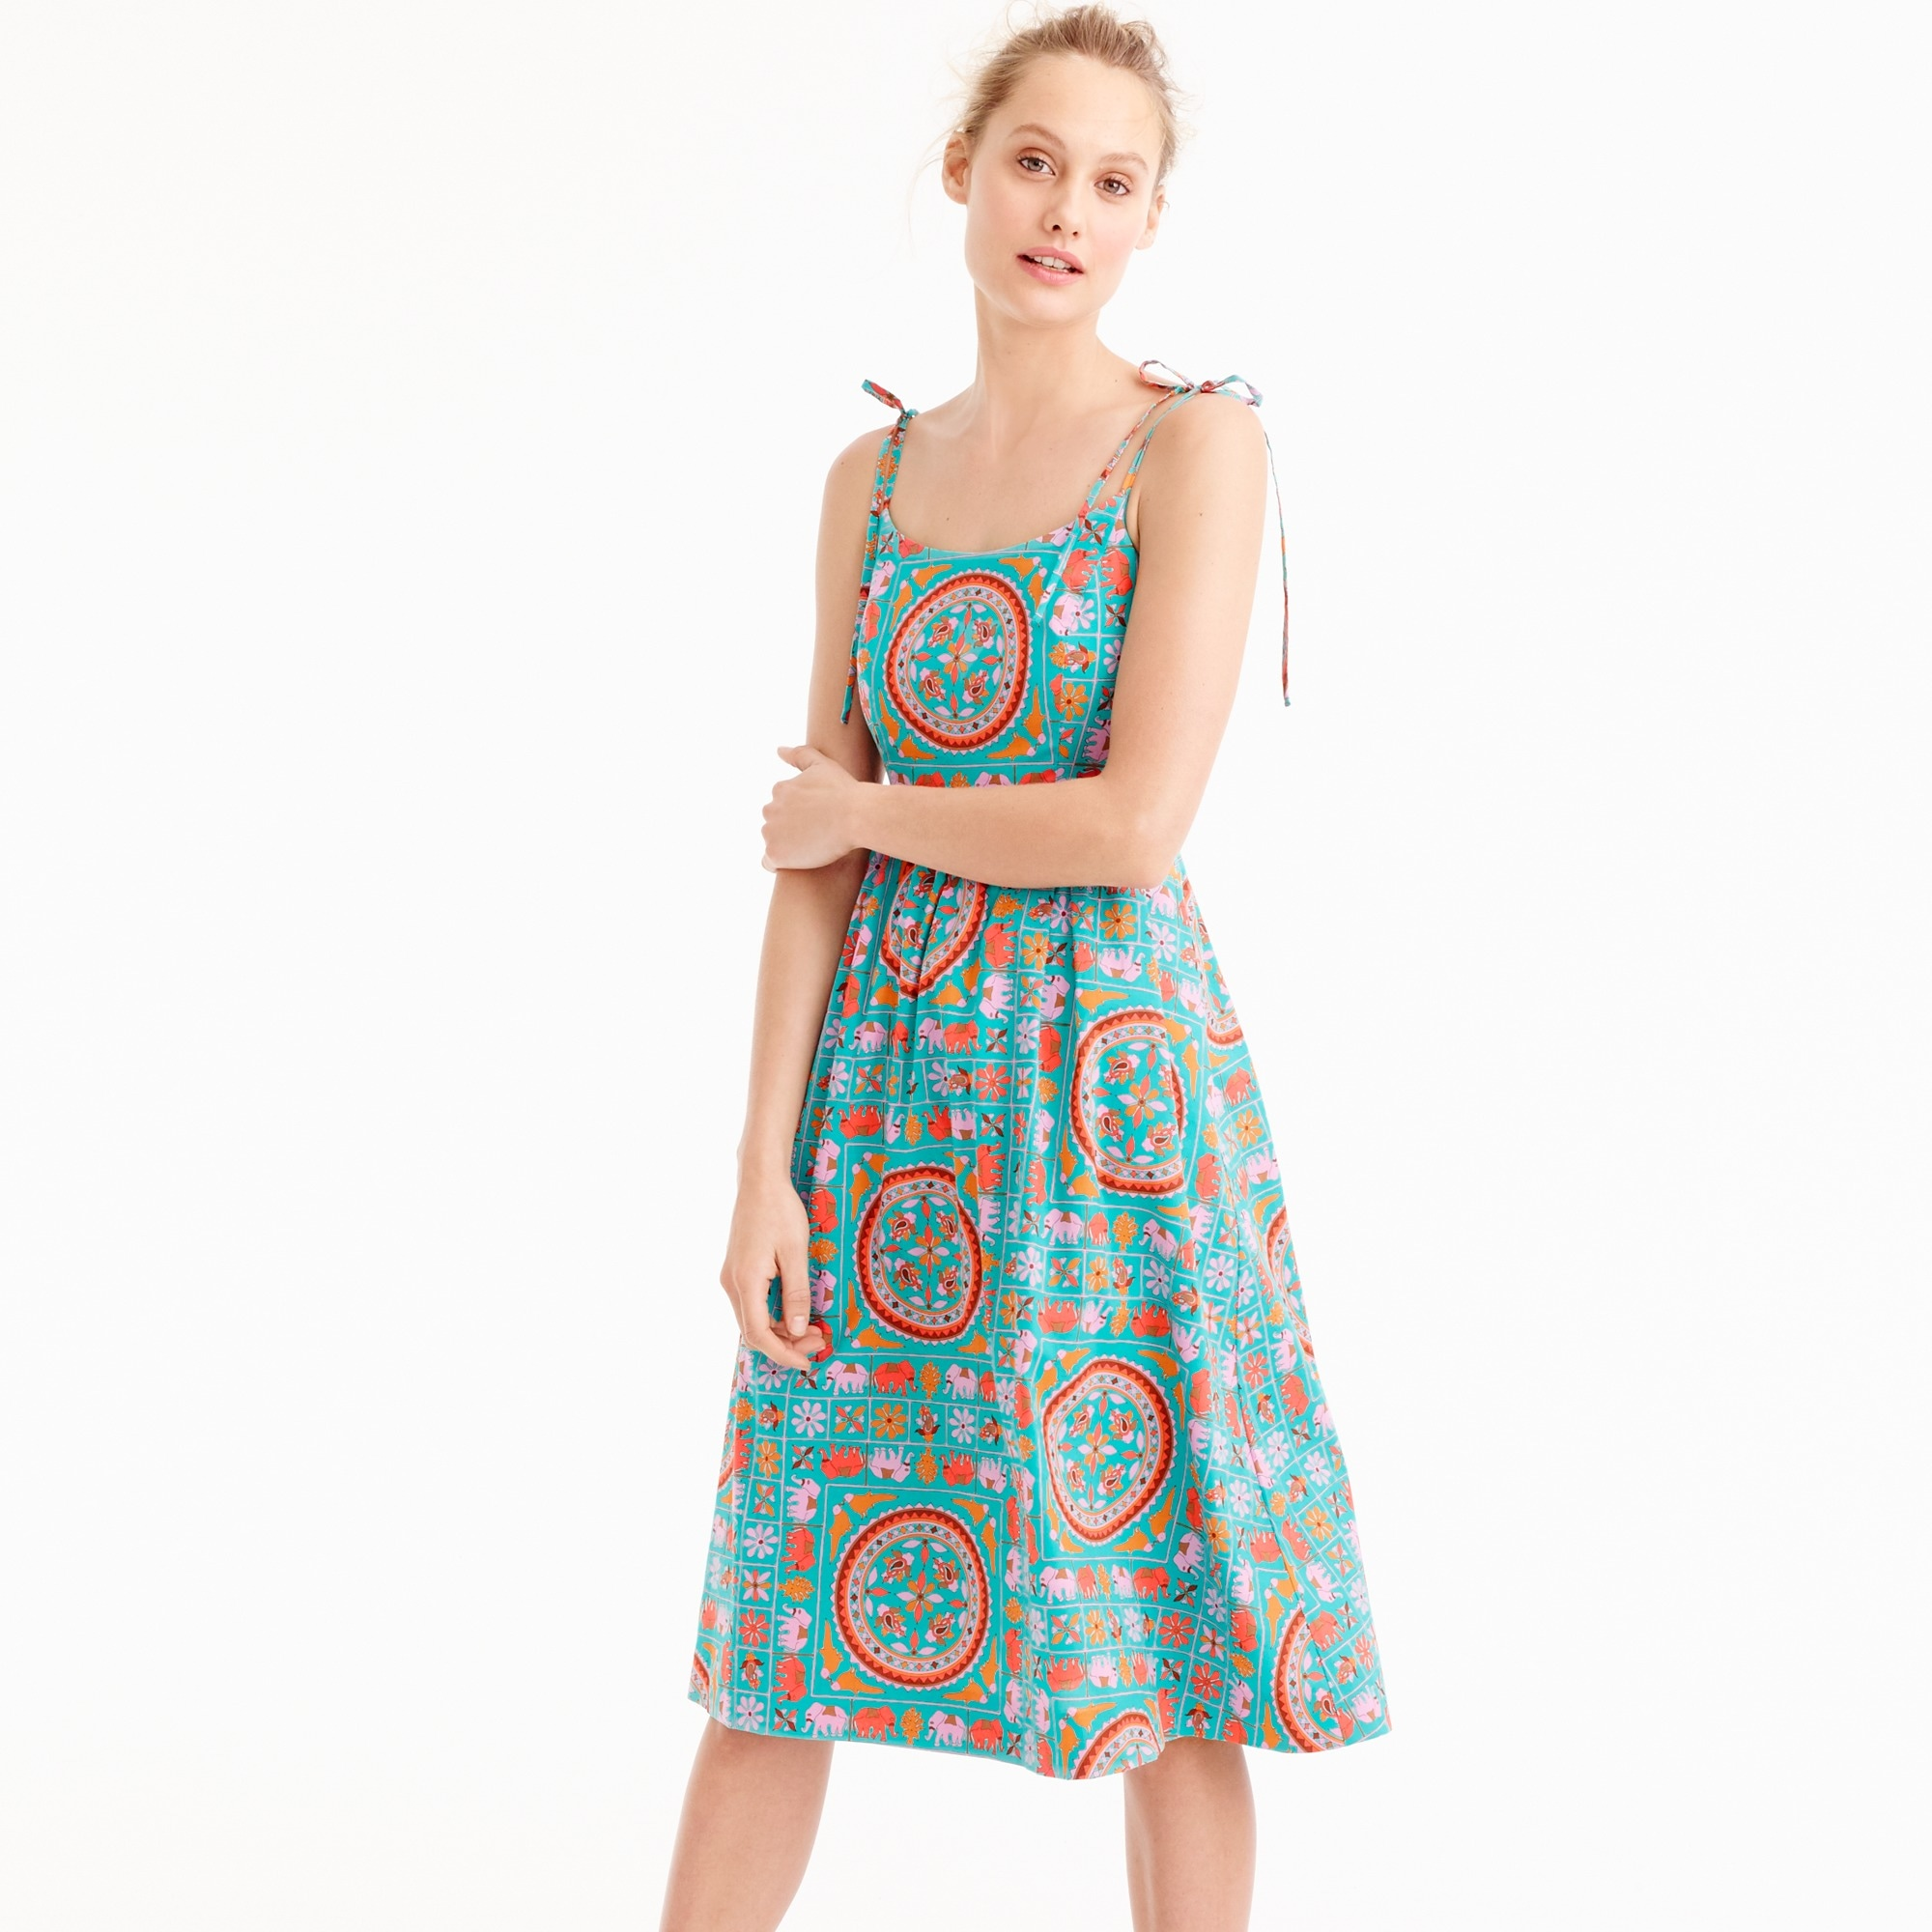 drake's for j.crew tie-shoulder dress in tiled elephant print : women's dresses